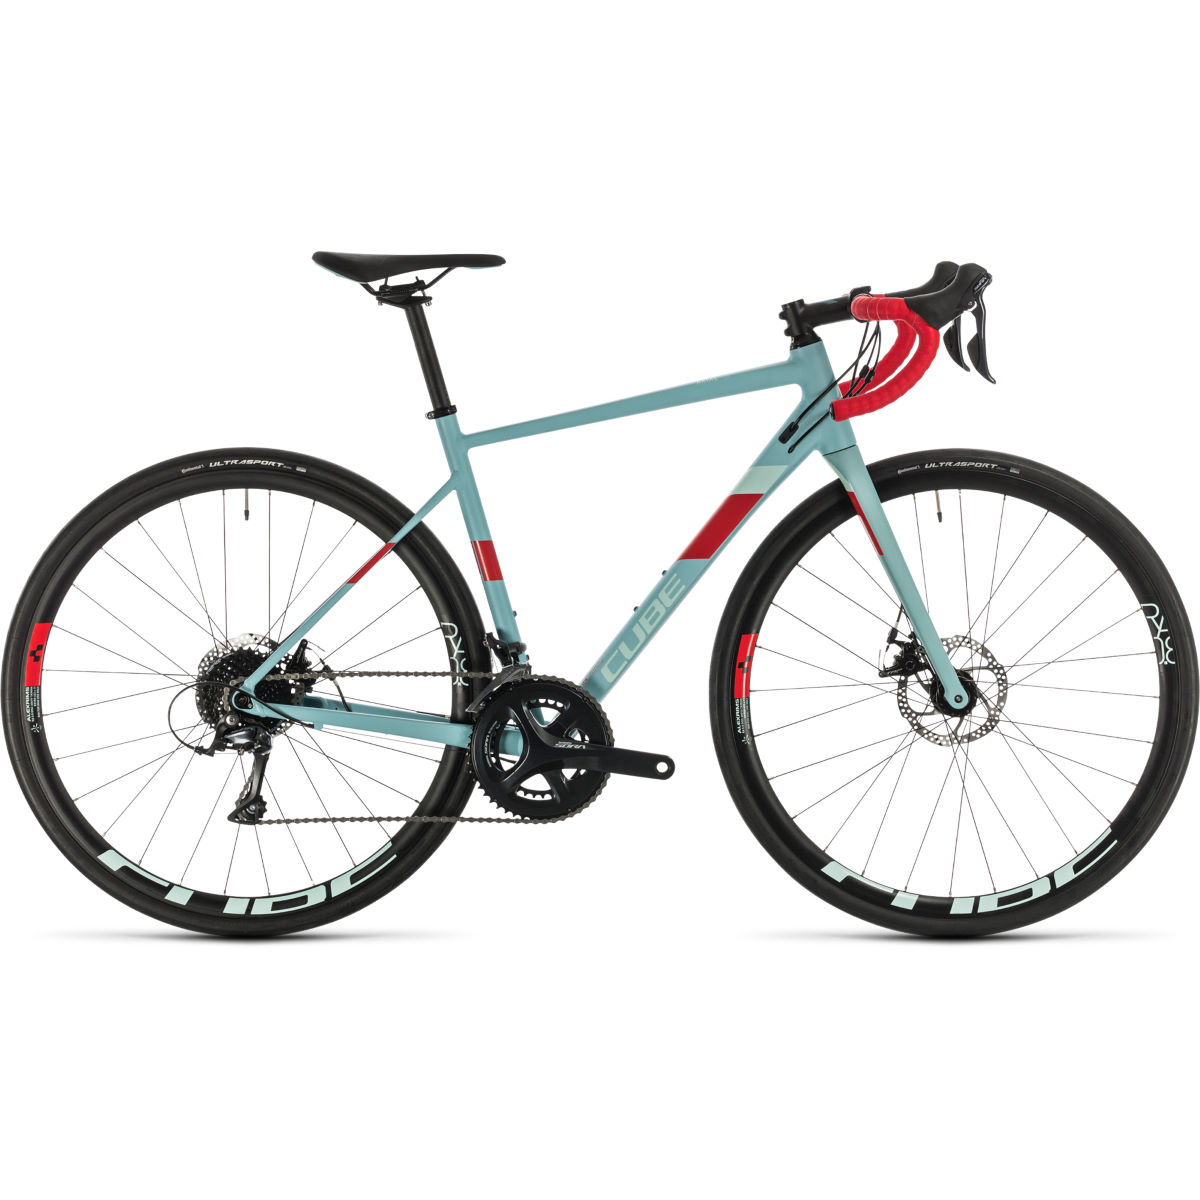 Cube Axial WS Pro Womens Road Bike (2020) - 53cm Greyblue - Coral